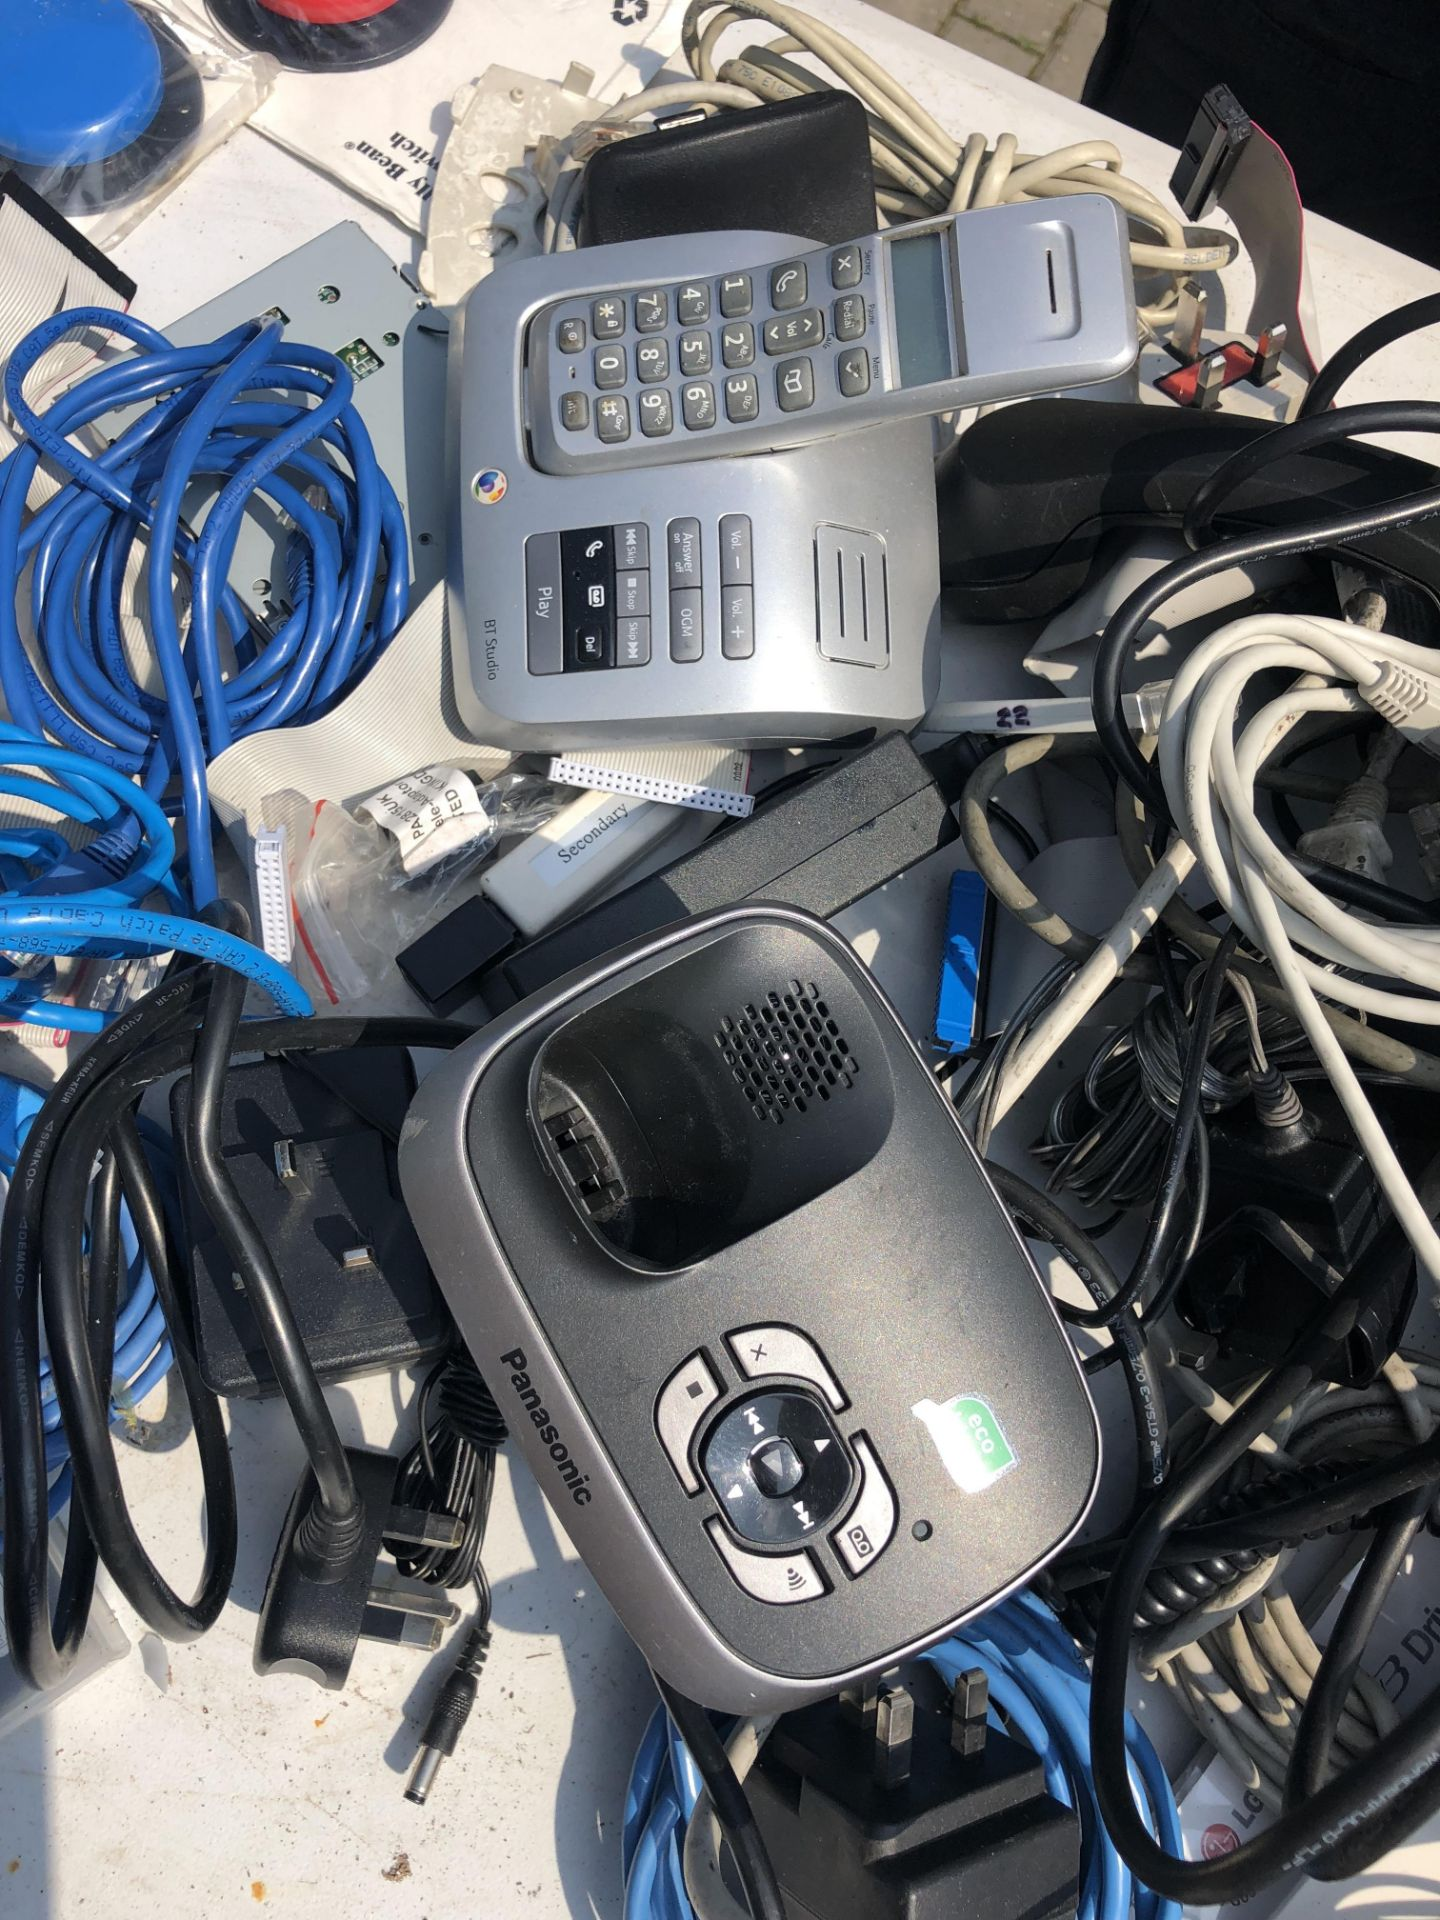 JOB LOT OF OFFICE EQUIPMENT INCLUDES PHONES MODEMS ETHERNET CABLES LAPTOP CHARGERS ETC - Image 2 of 5